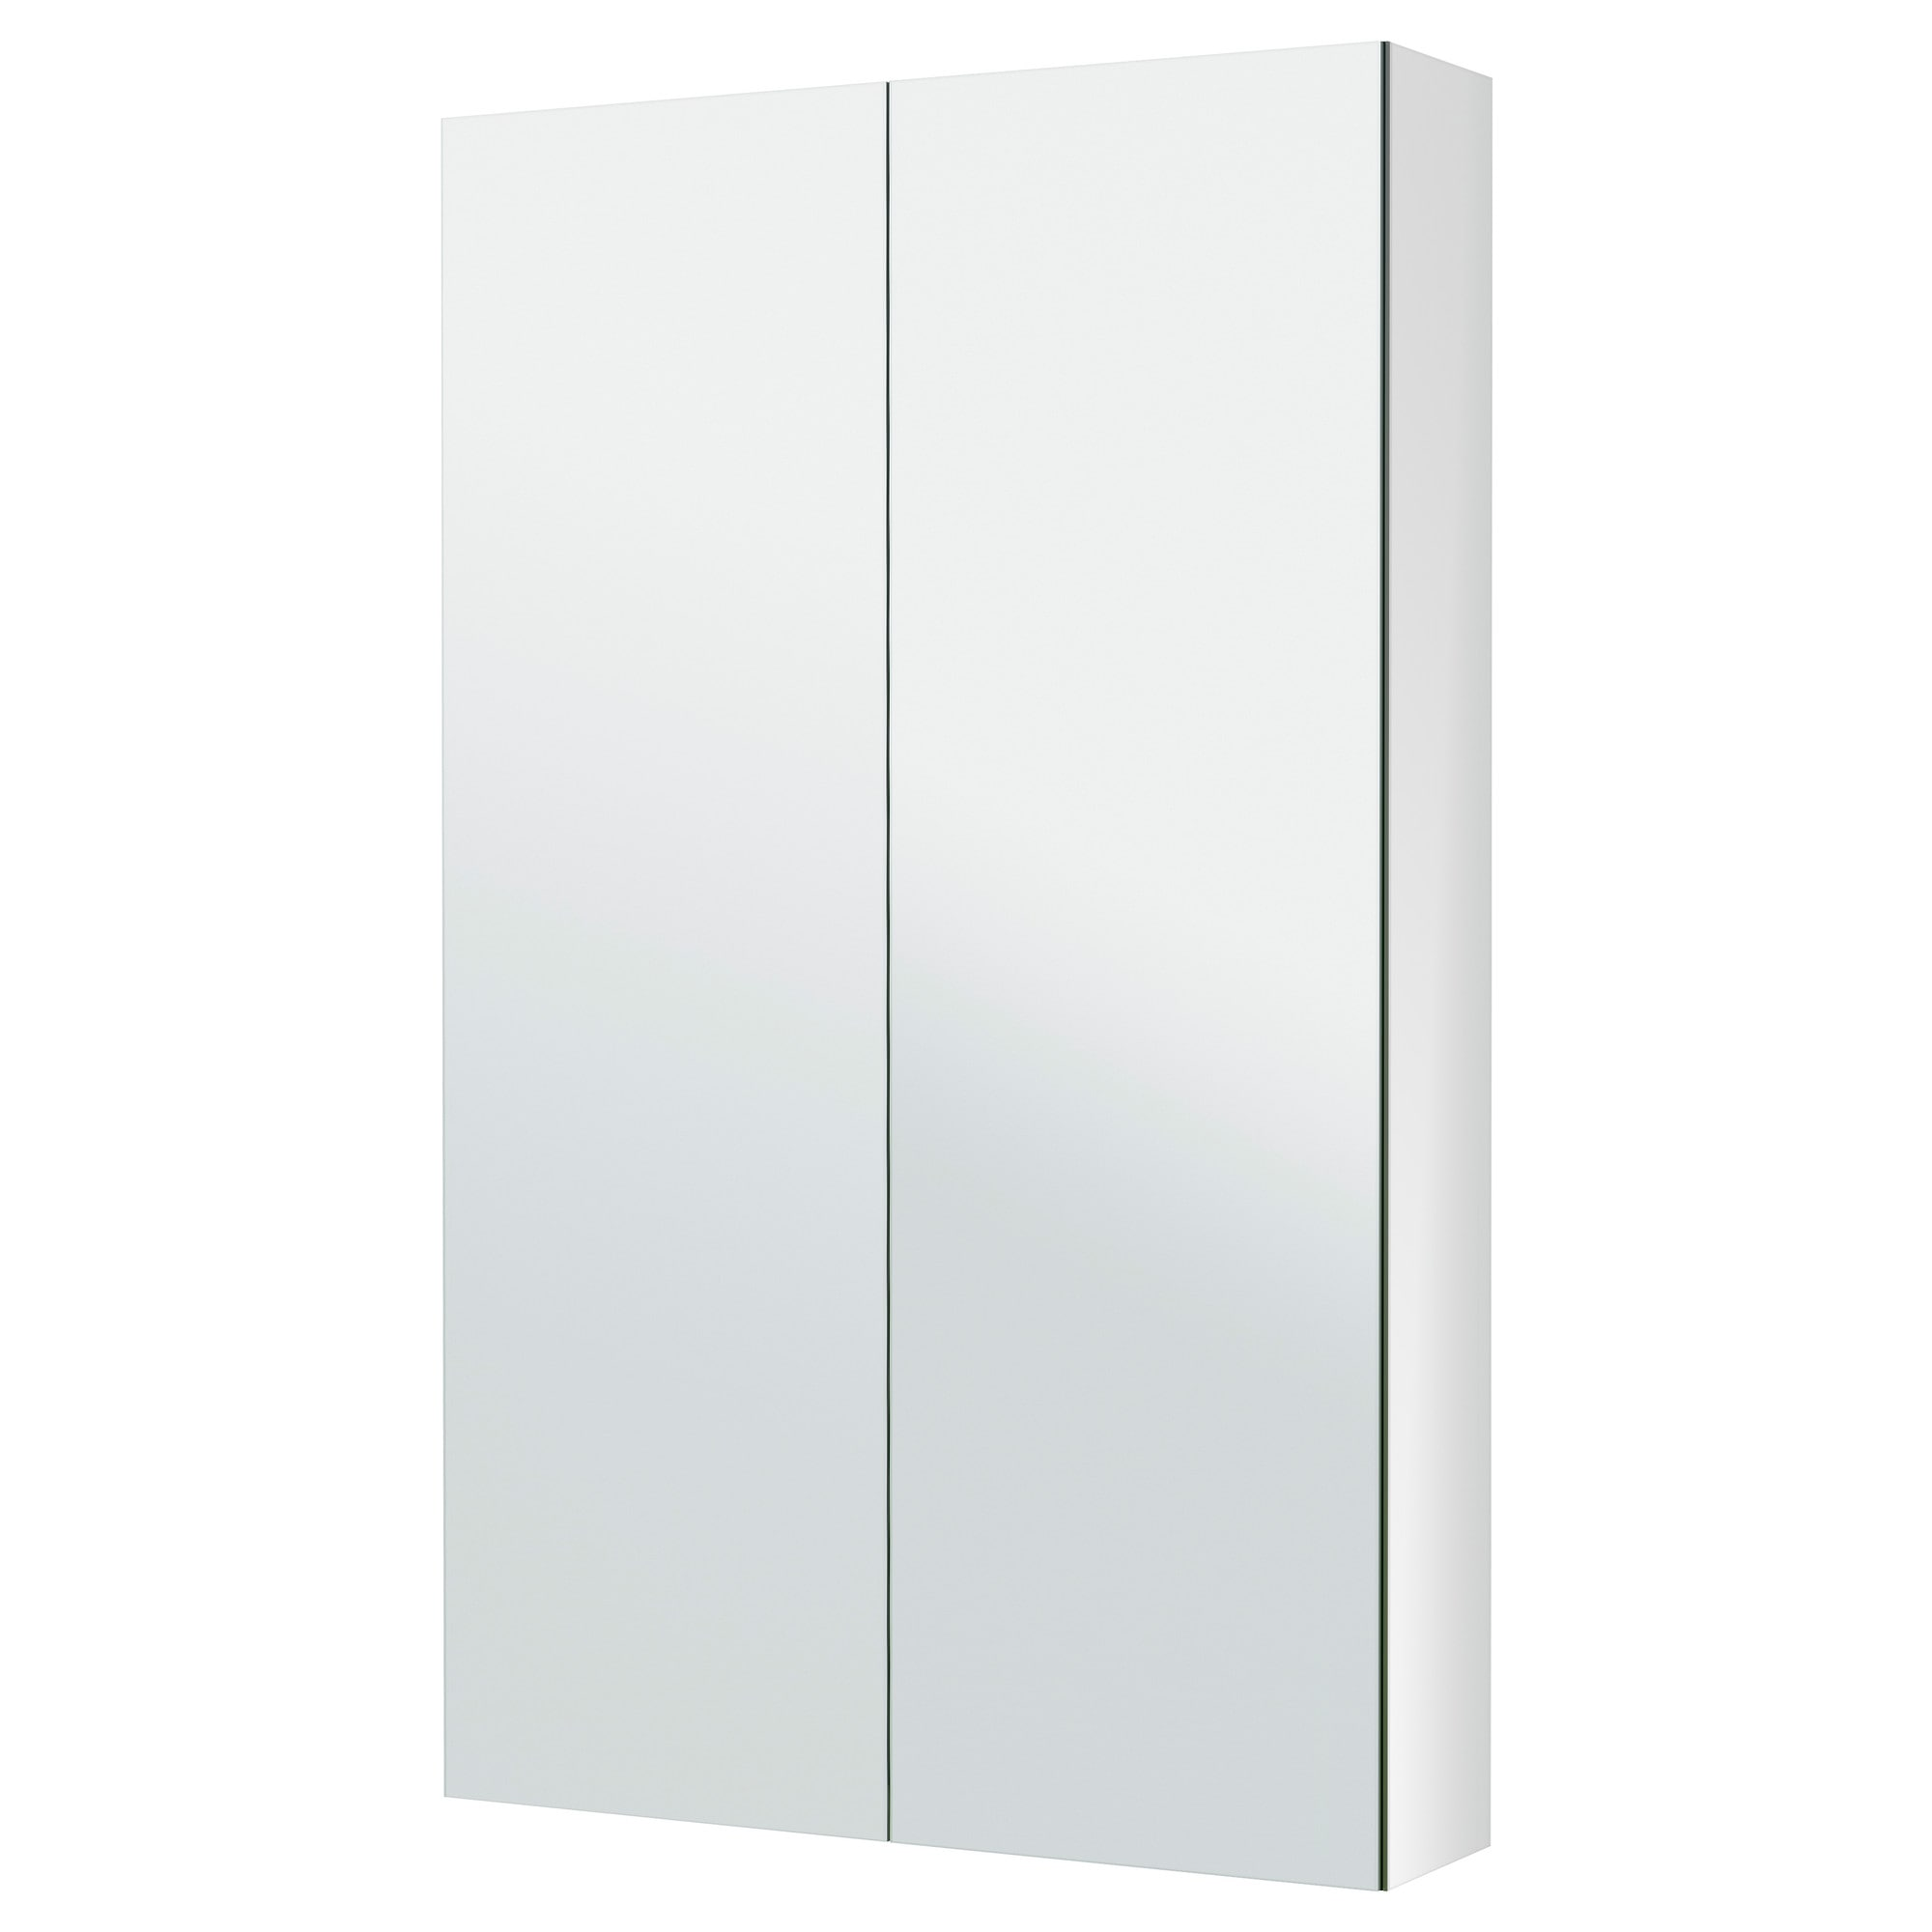 Ikea Trysil Chest Of Drawers Review ~ Tall Bathroom Cabinets With Mirror ~ Mirrored Bathroom Cabinets  IKEA